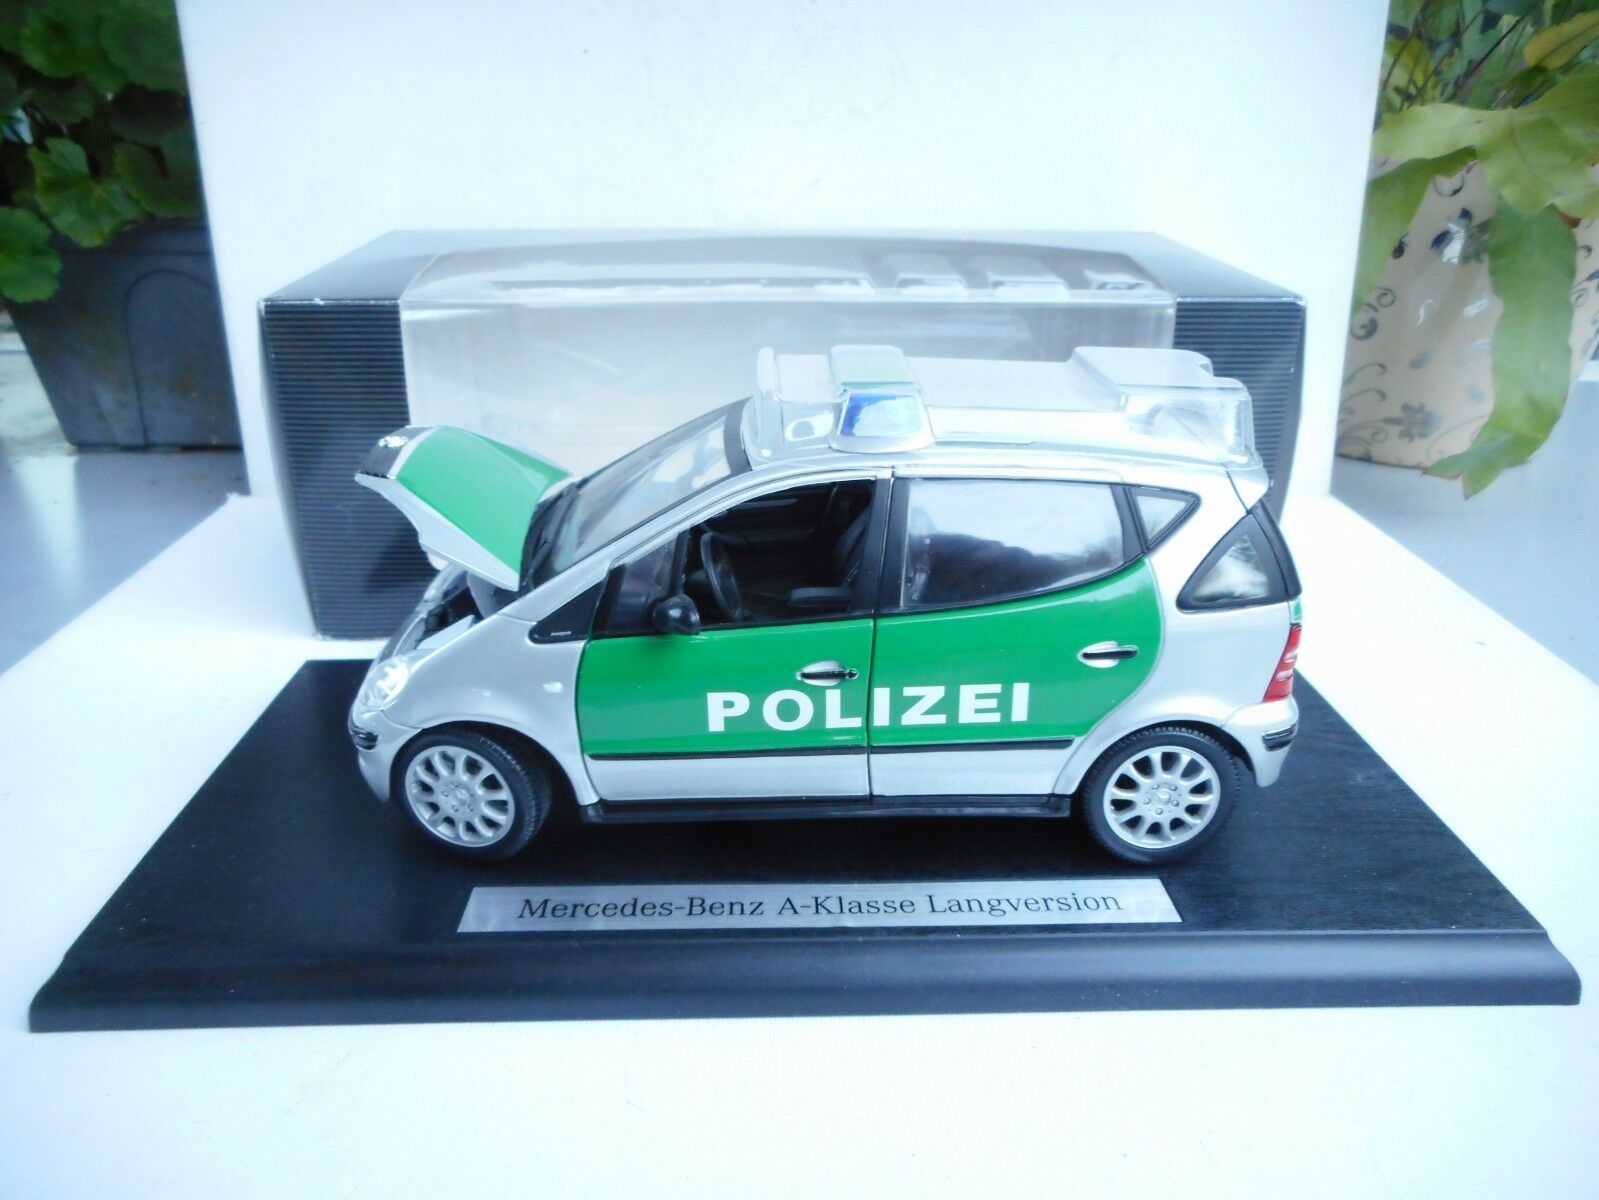 Maisto 1 18, Mercedes-Benz A-Klasse (W169) polizei dealer box model neu ovp